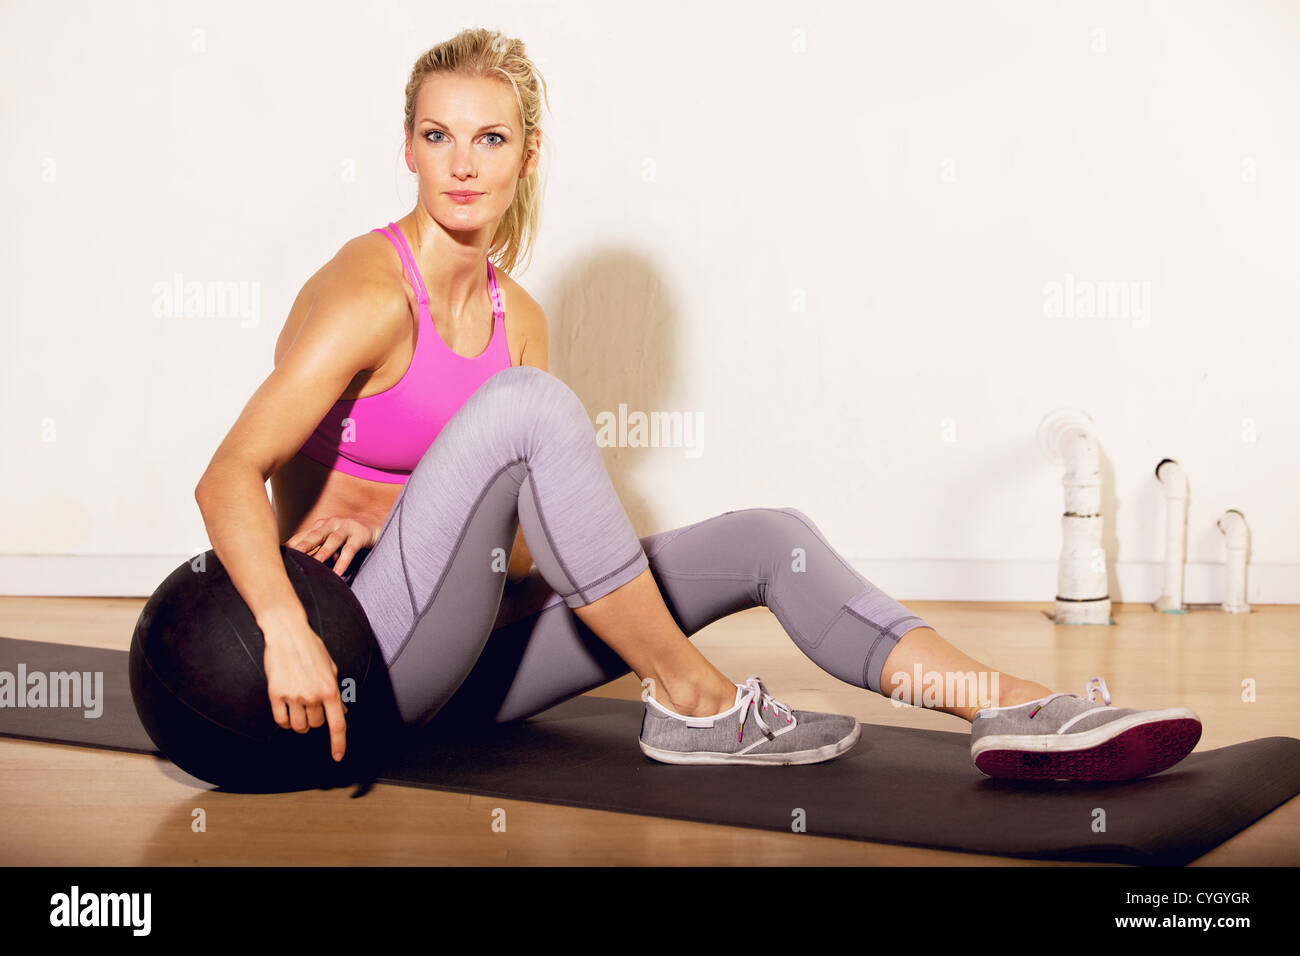 Fitness instructor at the gym sitting on the floor with a pilates ball Stock Photo